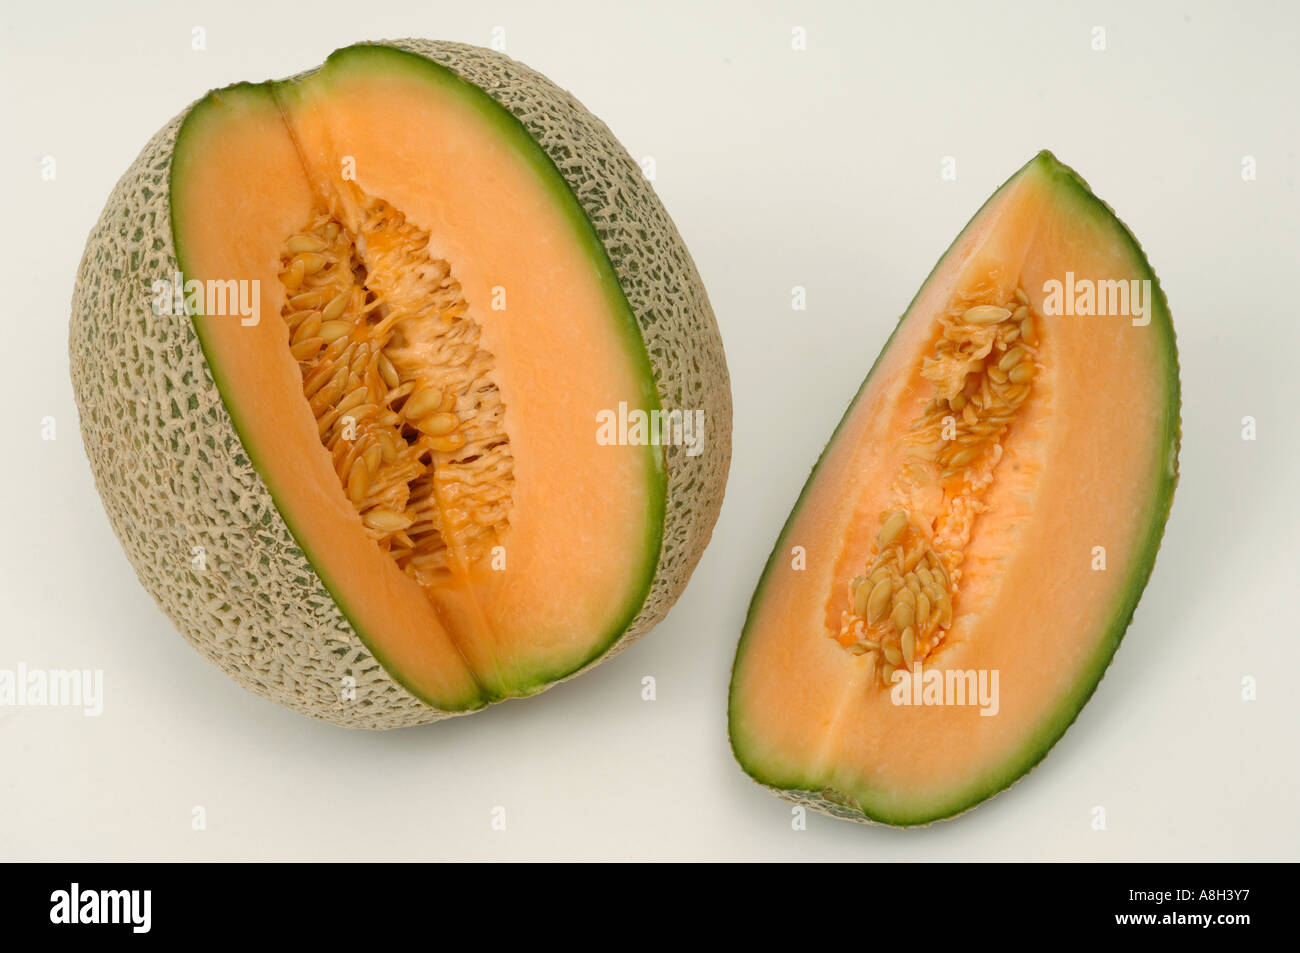 Musk melon supermarket bought and in normal shop condition - Stock Image